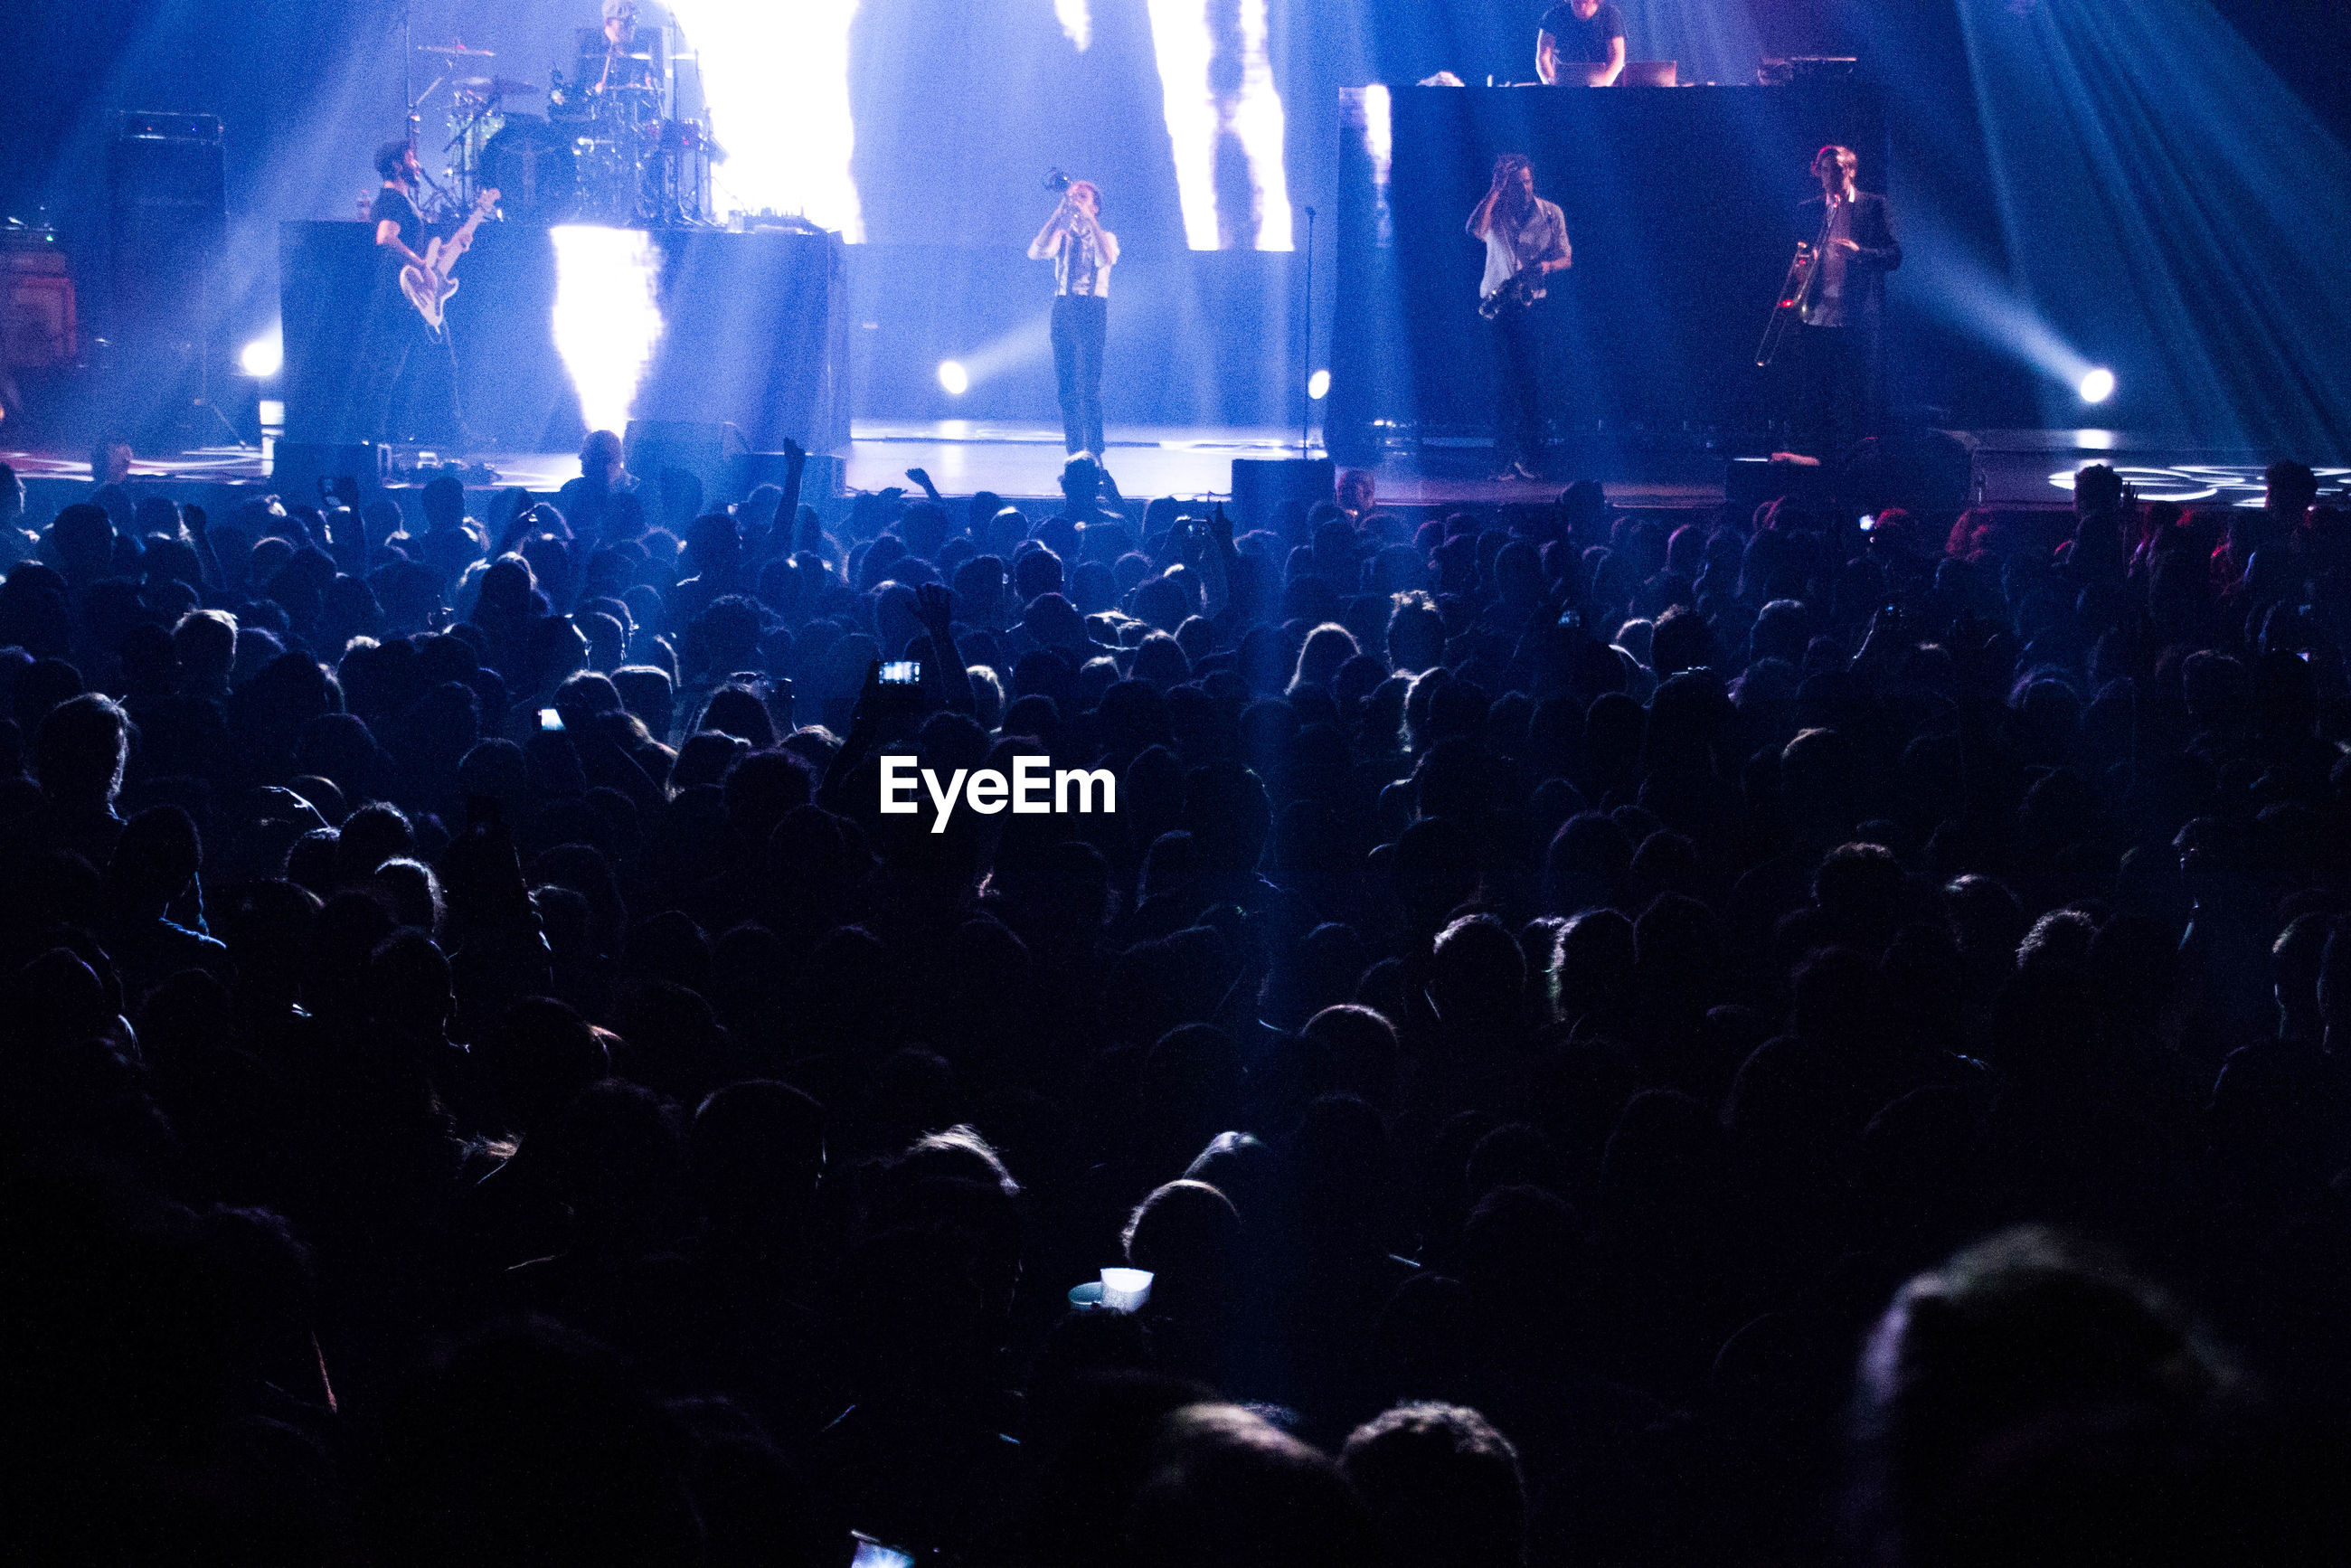 large group of people, indoors, crowd, illuminated, night, nightlife, men, music, concert, lifestyles, person, arts culture and entertainment, popular music concert, music festival, togetherness, leisure activity, silhouette, enjoyment, light - natural phenomenon